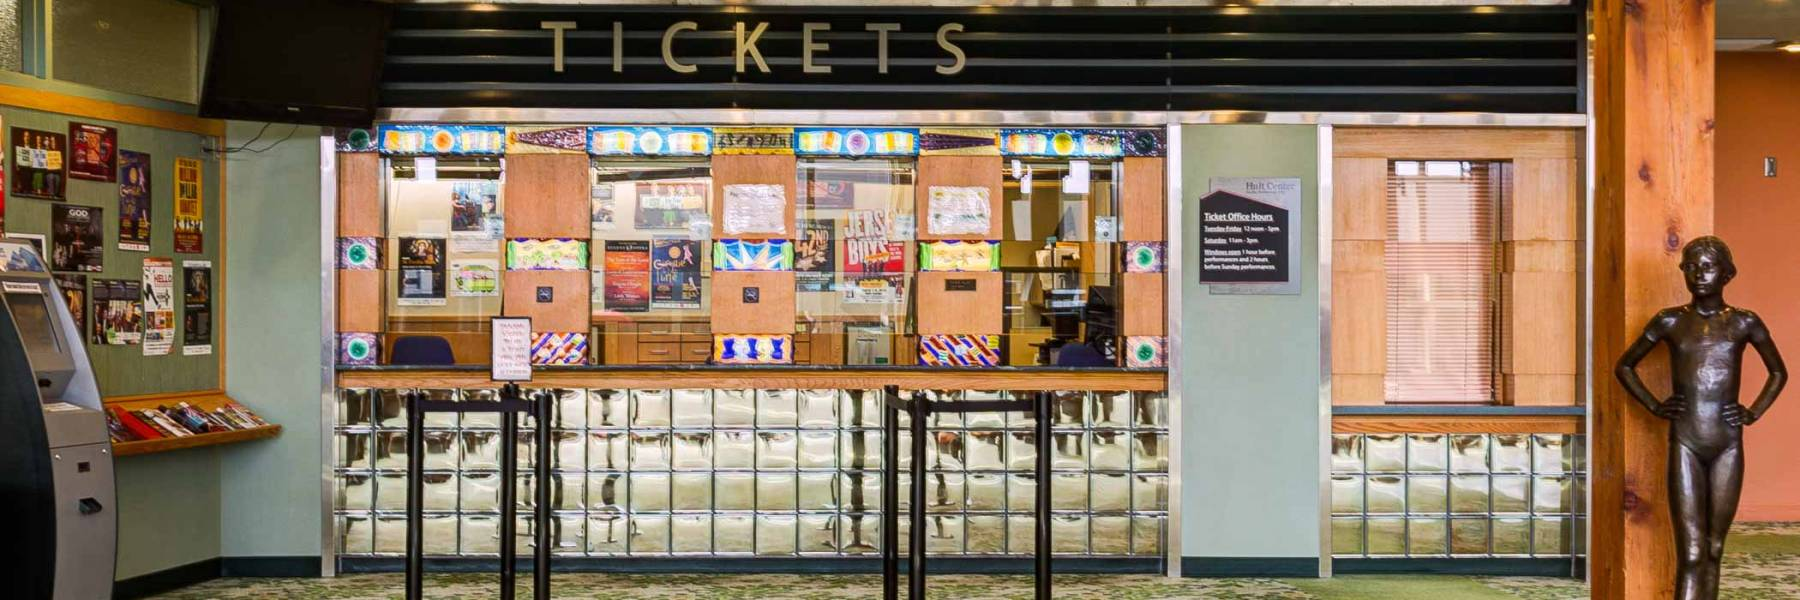 View of the Hult Center Ticket Office Window